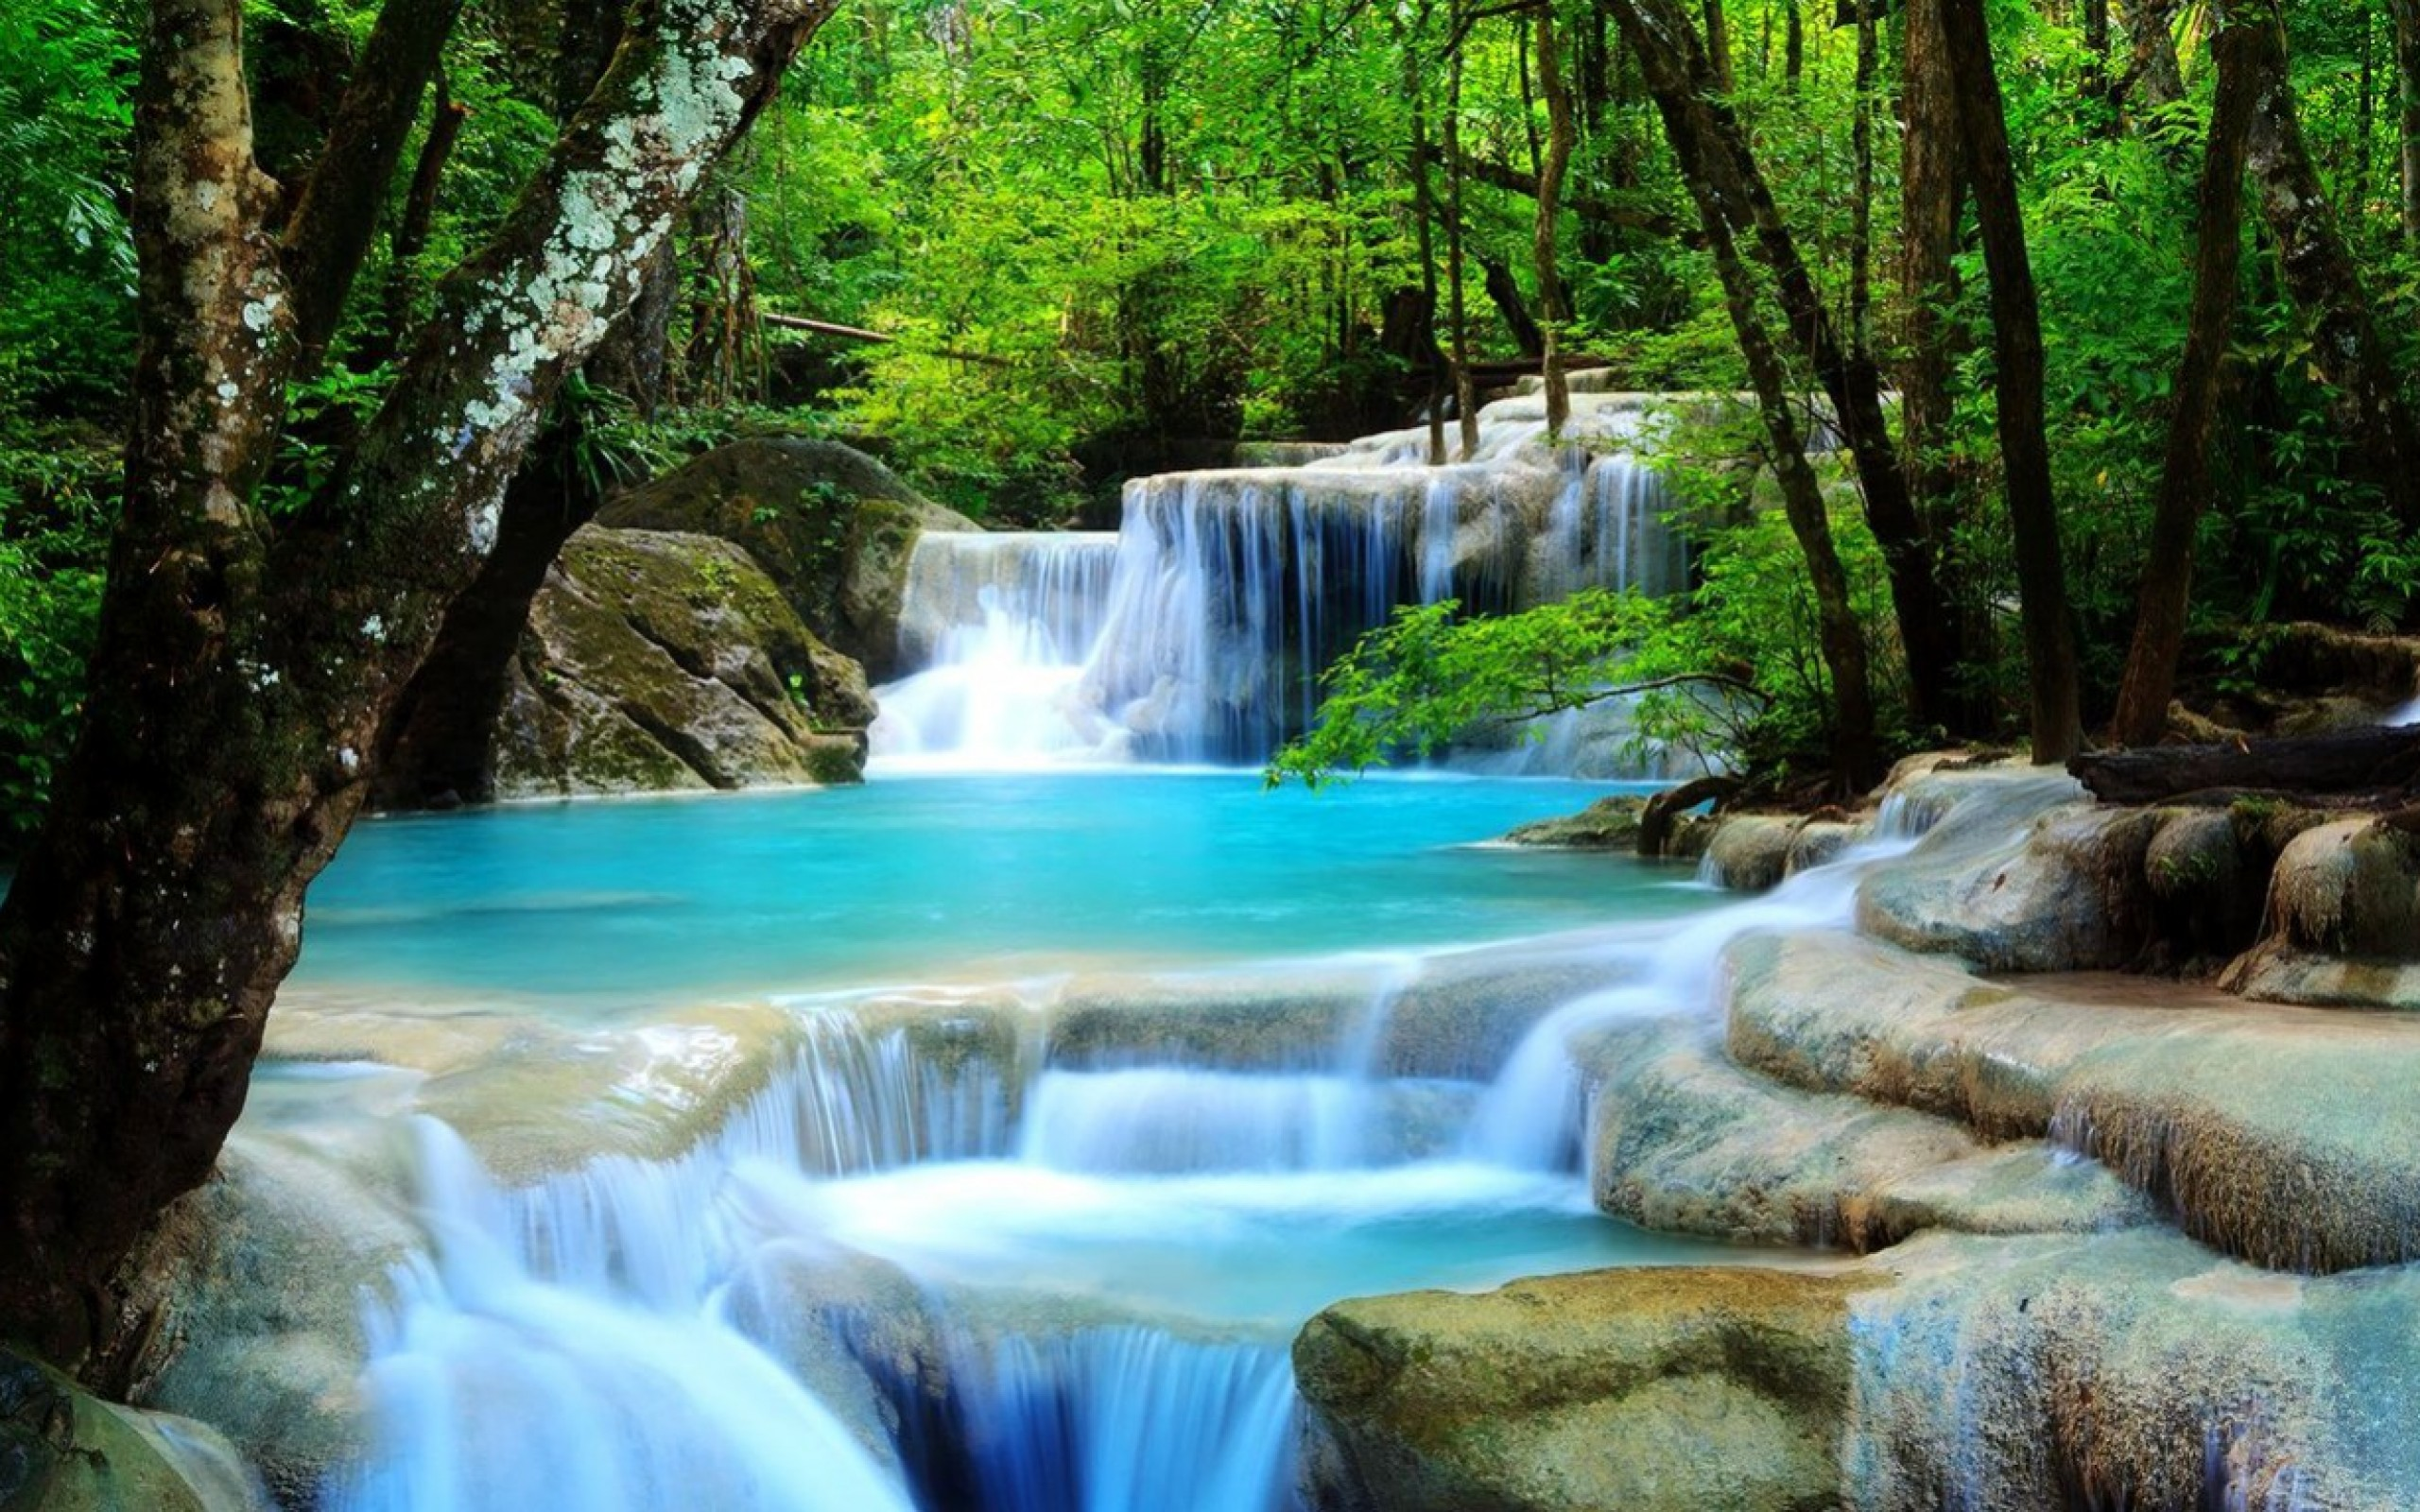 wallpaper which is under the waterfall wallpapers category of hd 2560x1600